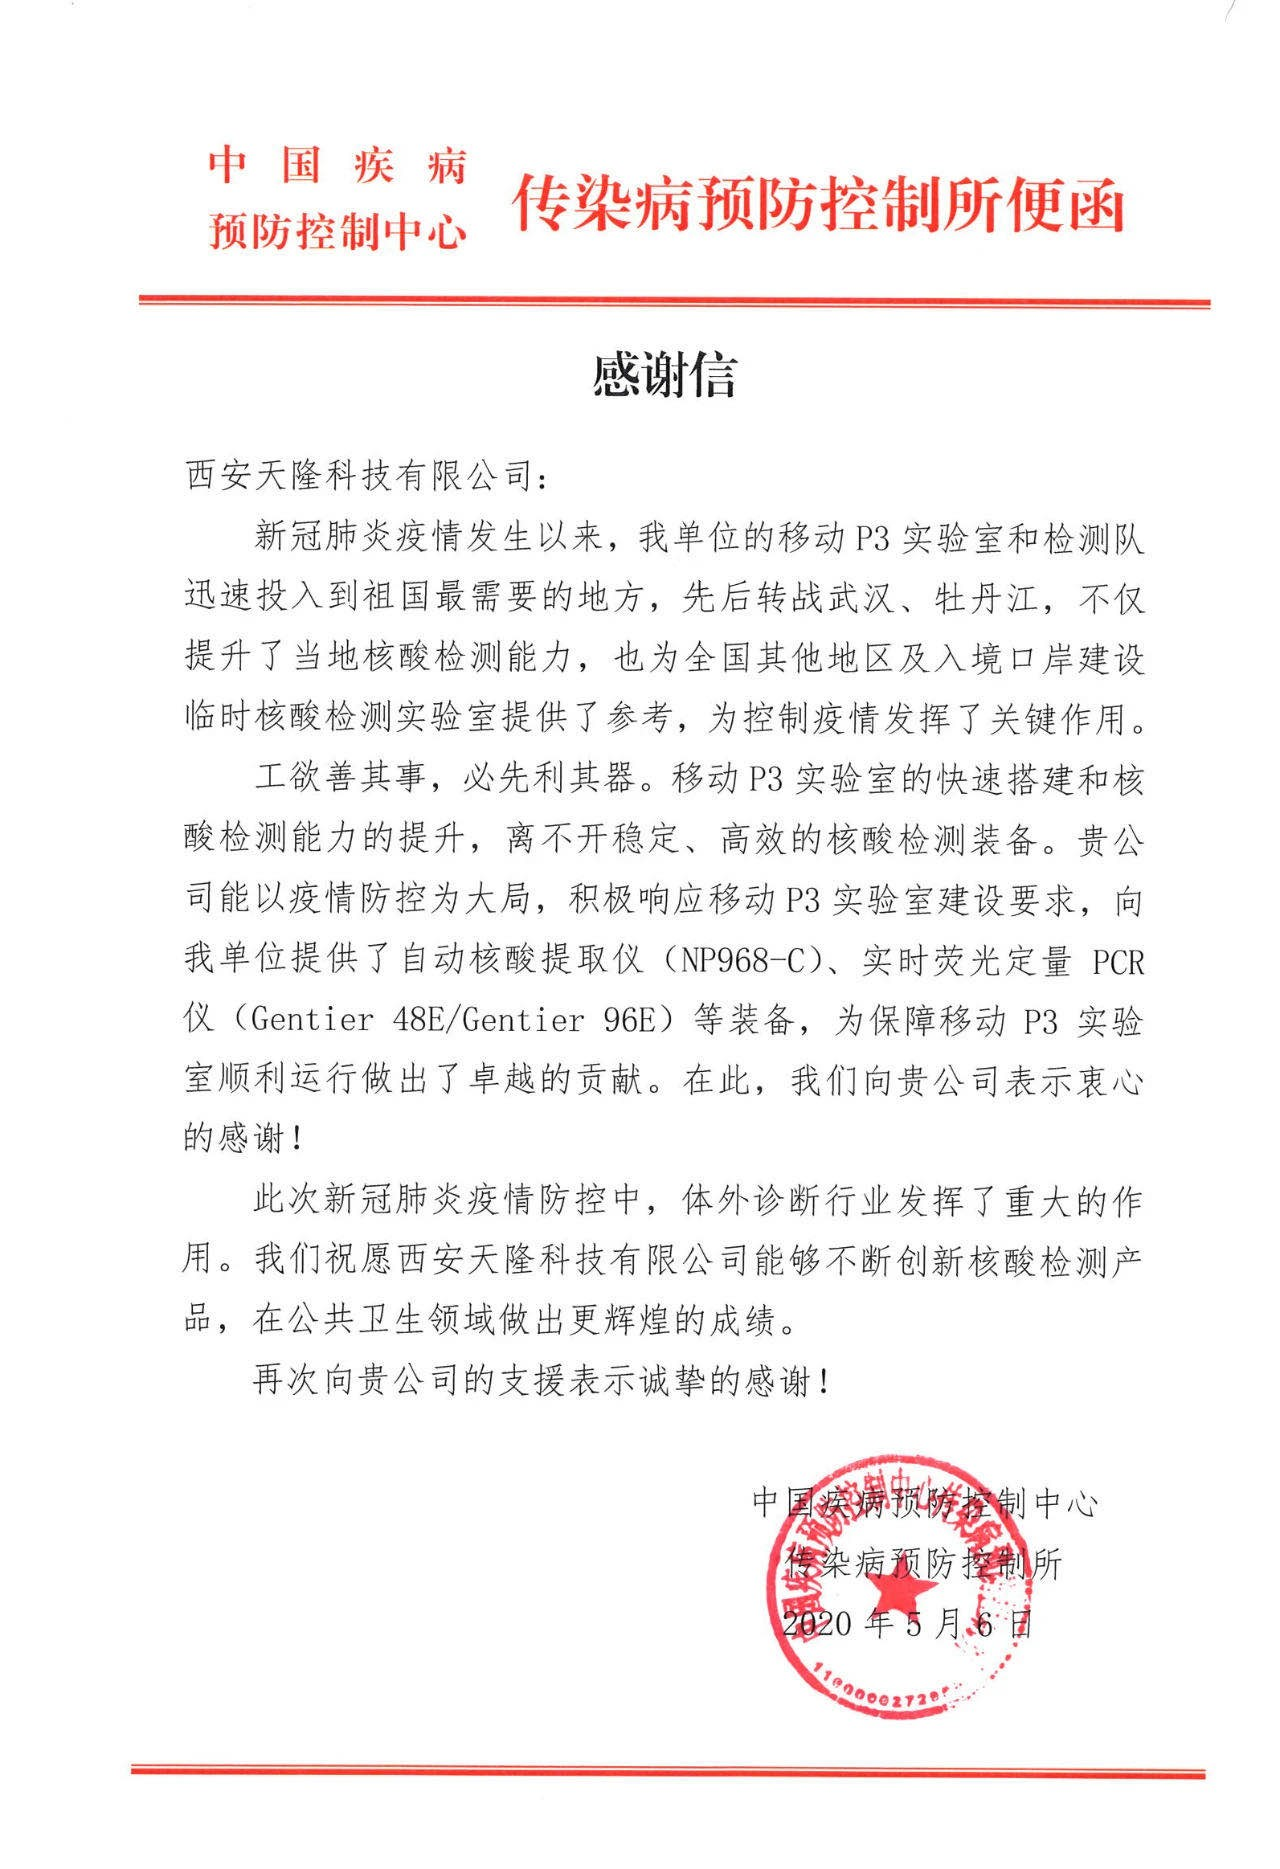 Thanks Letter from China CDC